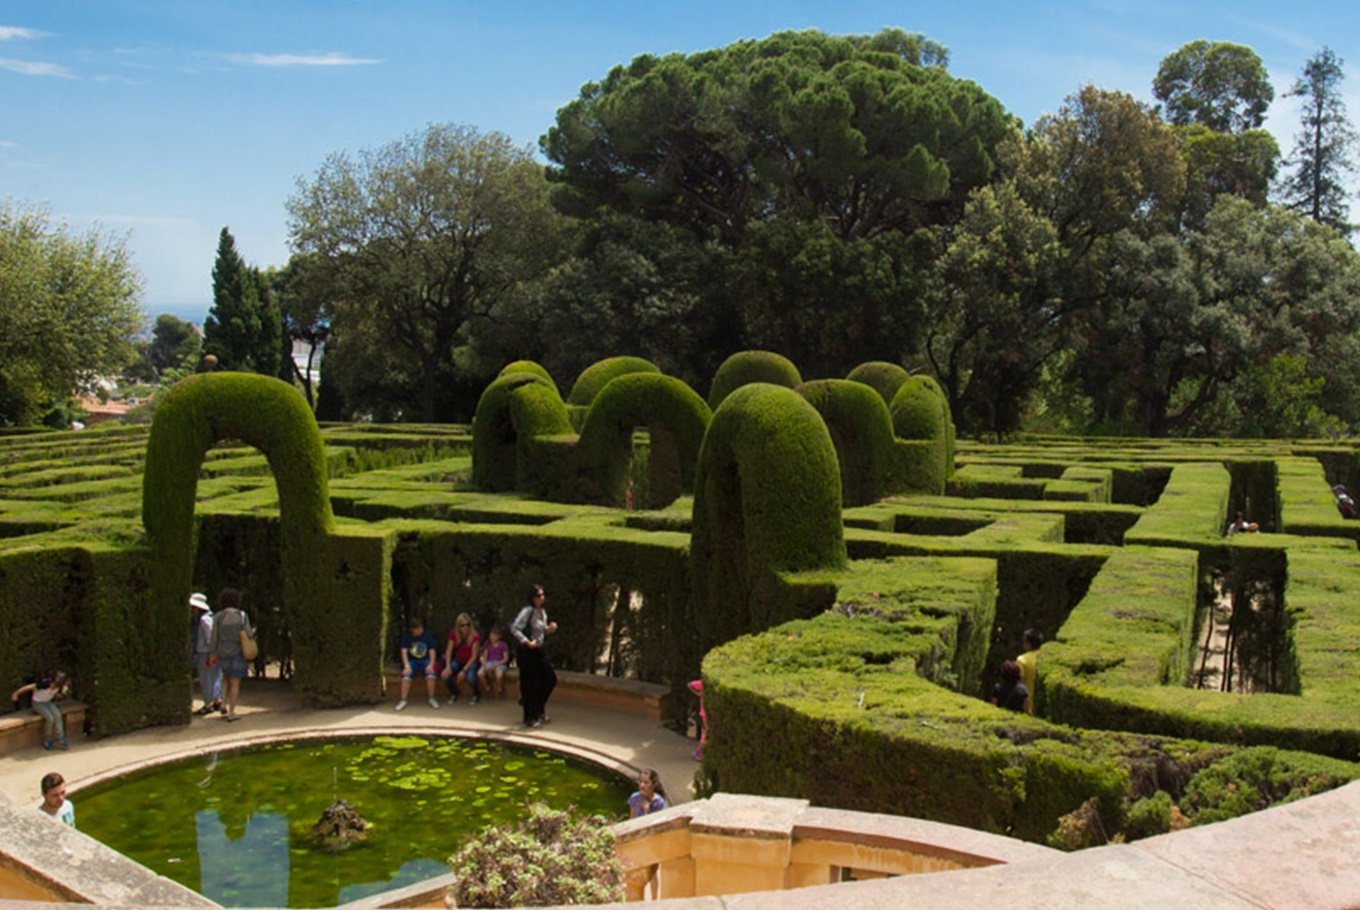 Visita familiar al Laberint d'Horta en Parque del Laberint d'Horta (Barcelona)